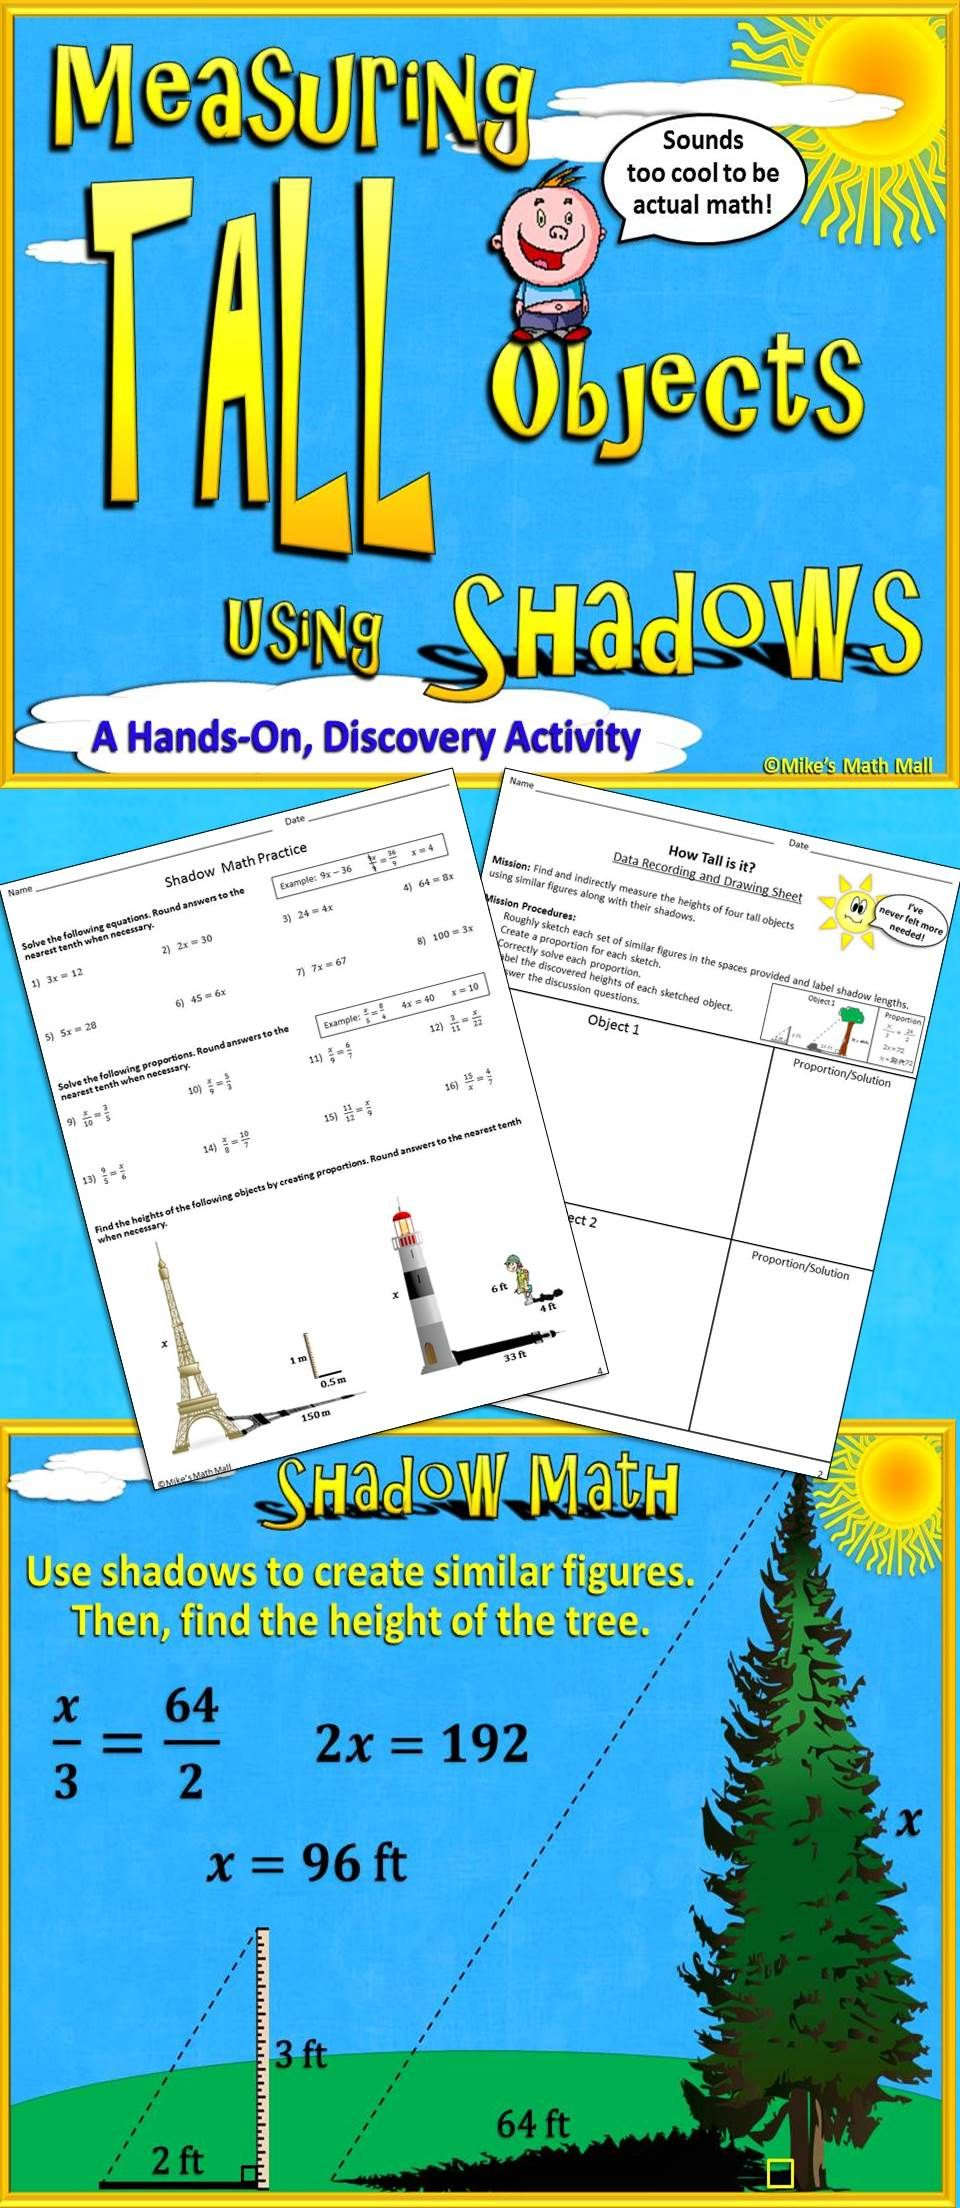 Measuring Tall Objects using Shadow Math (Outdoor Discovery Activity ...